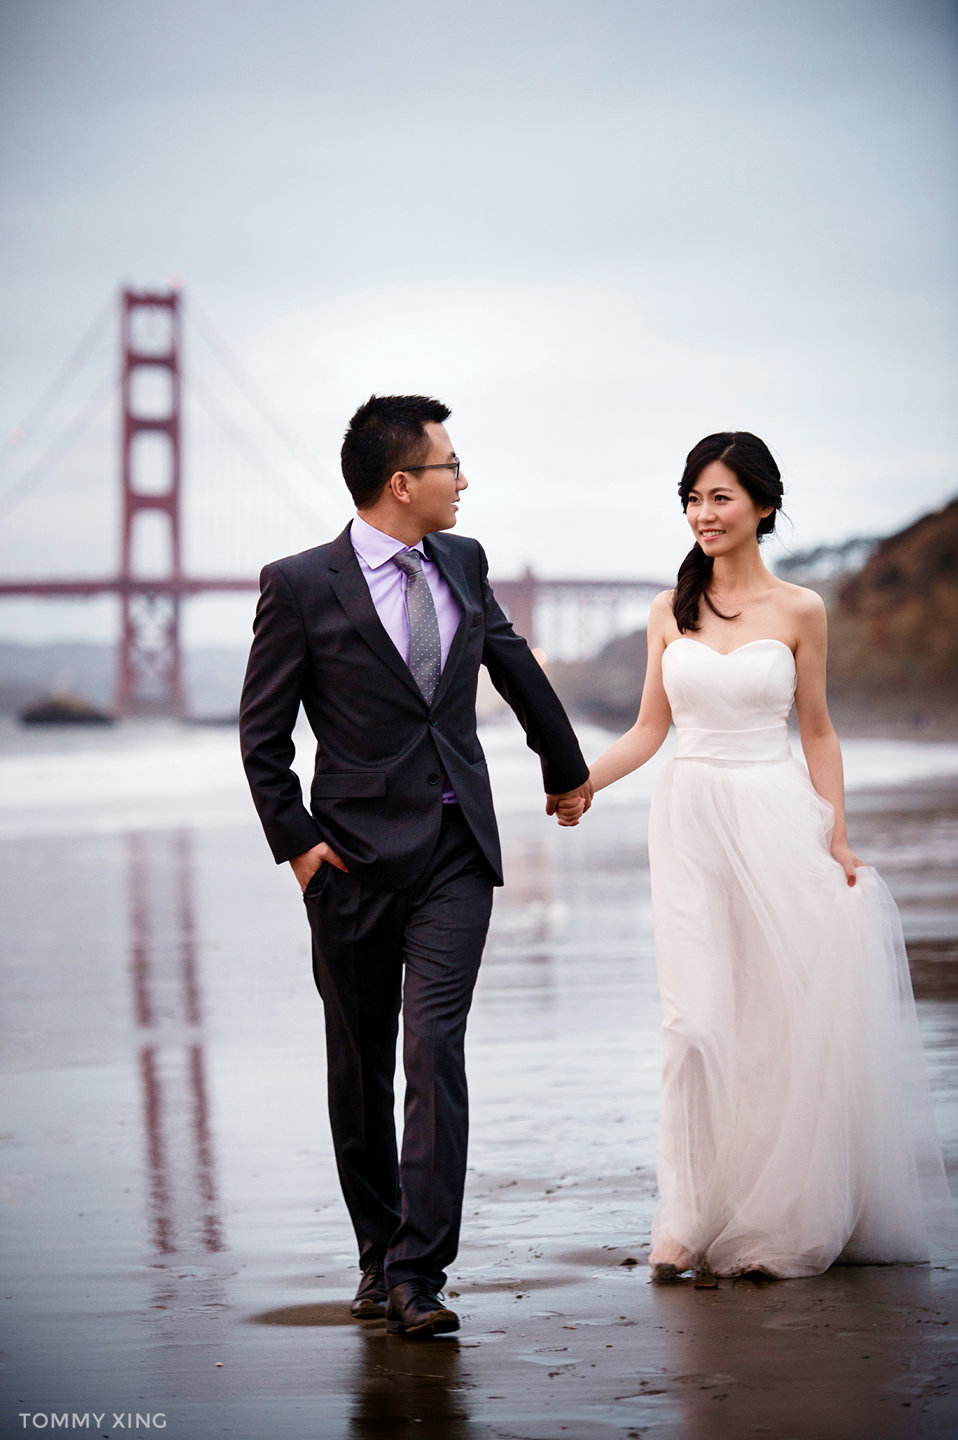 San Francisco Bay Area Chinese Pre Wedding Photographer Tommy Xing 旧金山湾区婚纱照摄影 39.jpg